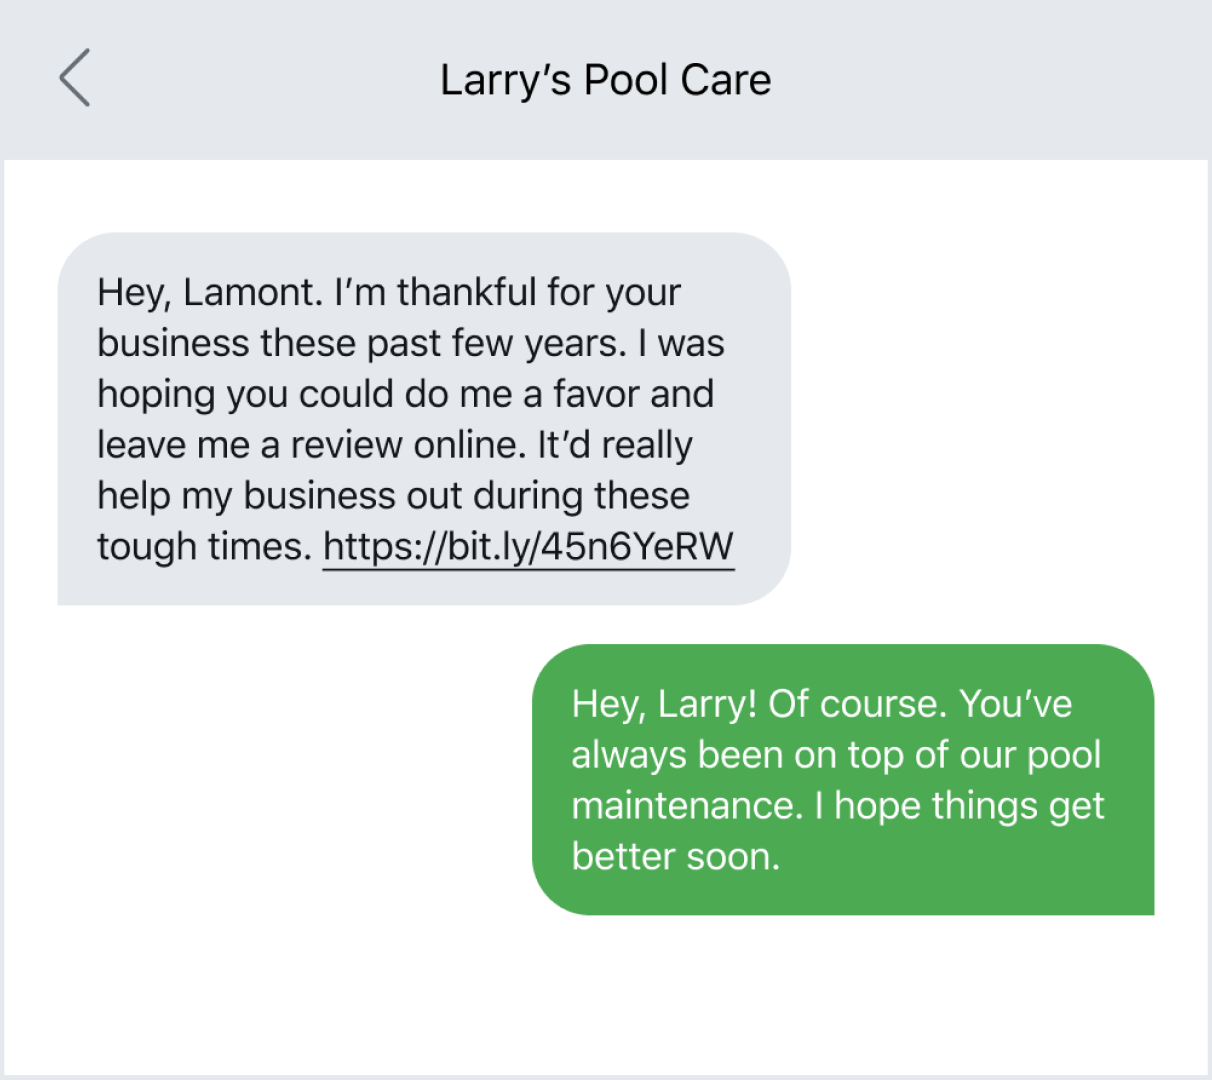 Text message example of a long-time customer offering a review